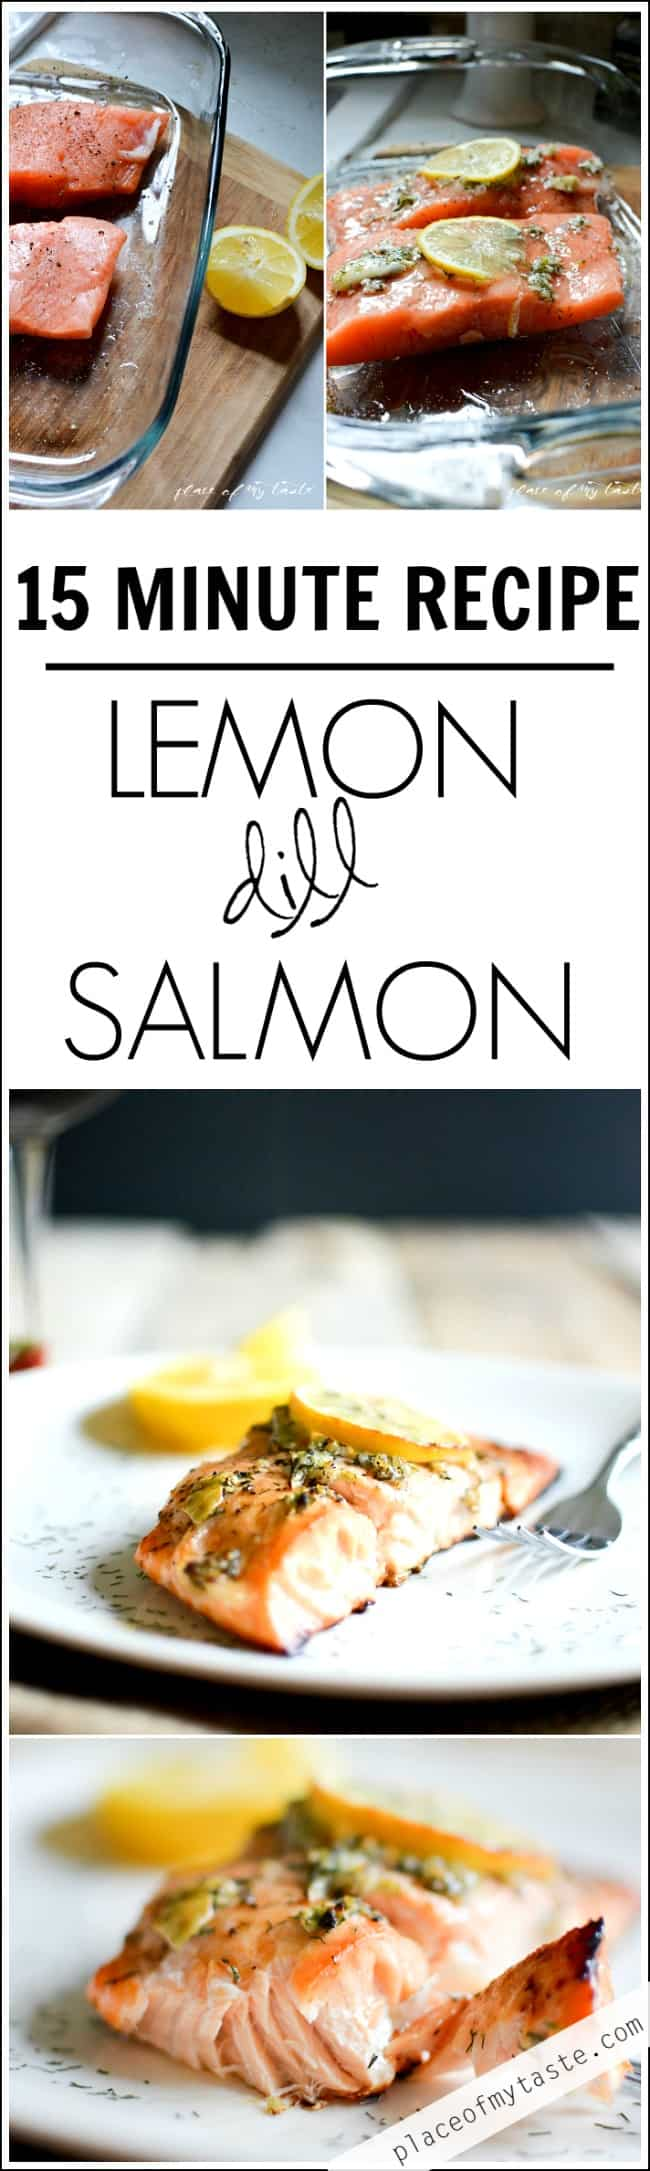 Lemon dill salmon -15 minute recipe